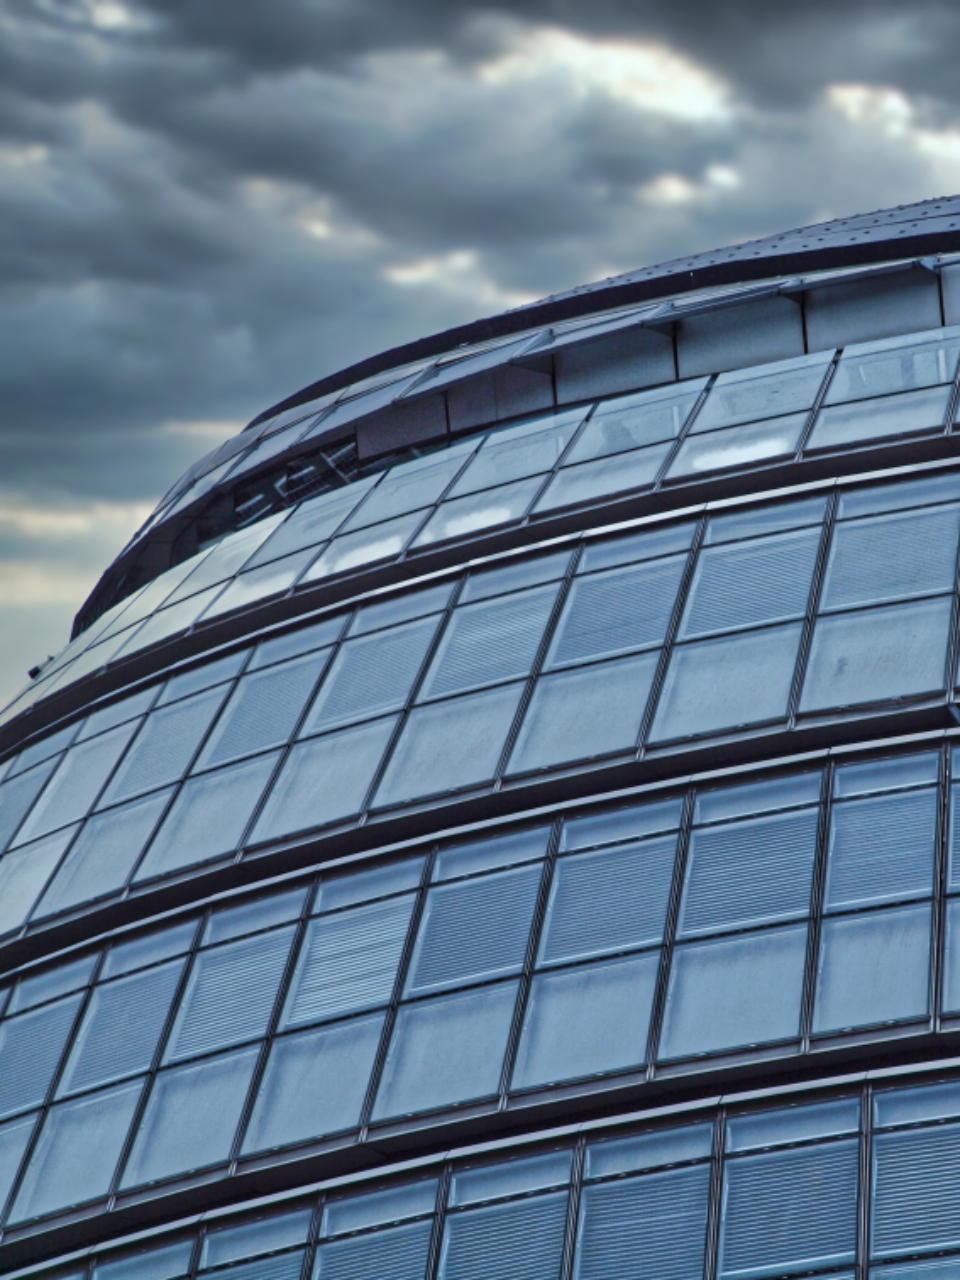 Free stock photo of curved building